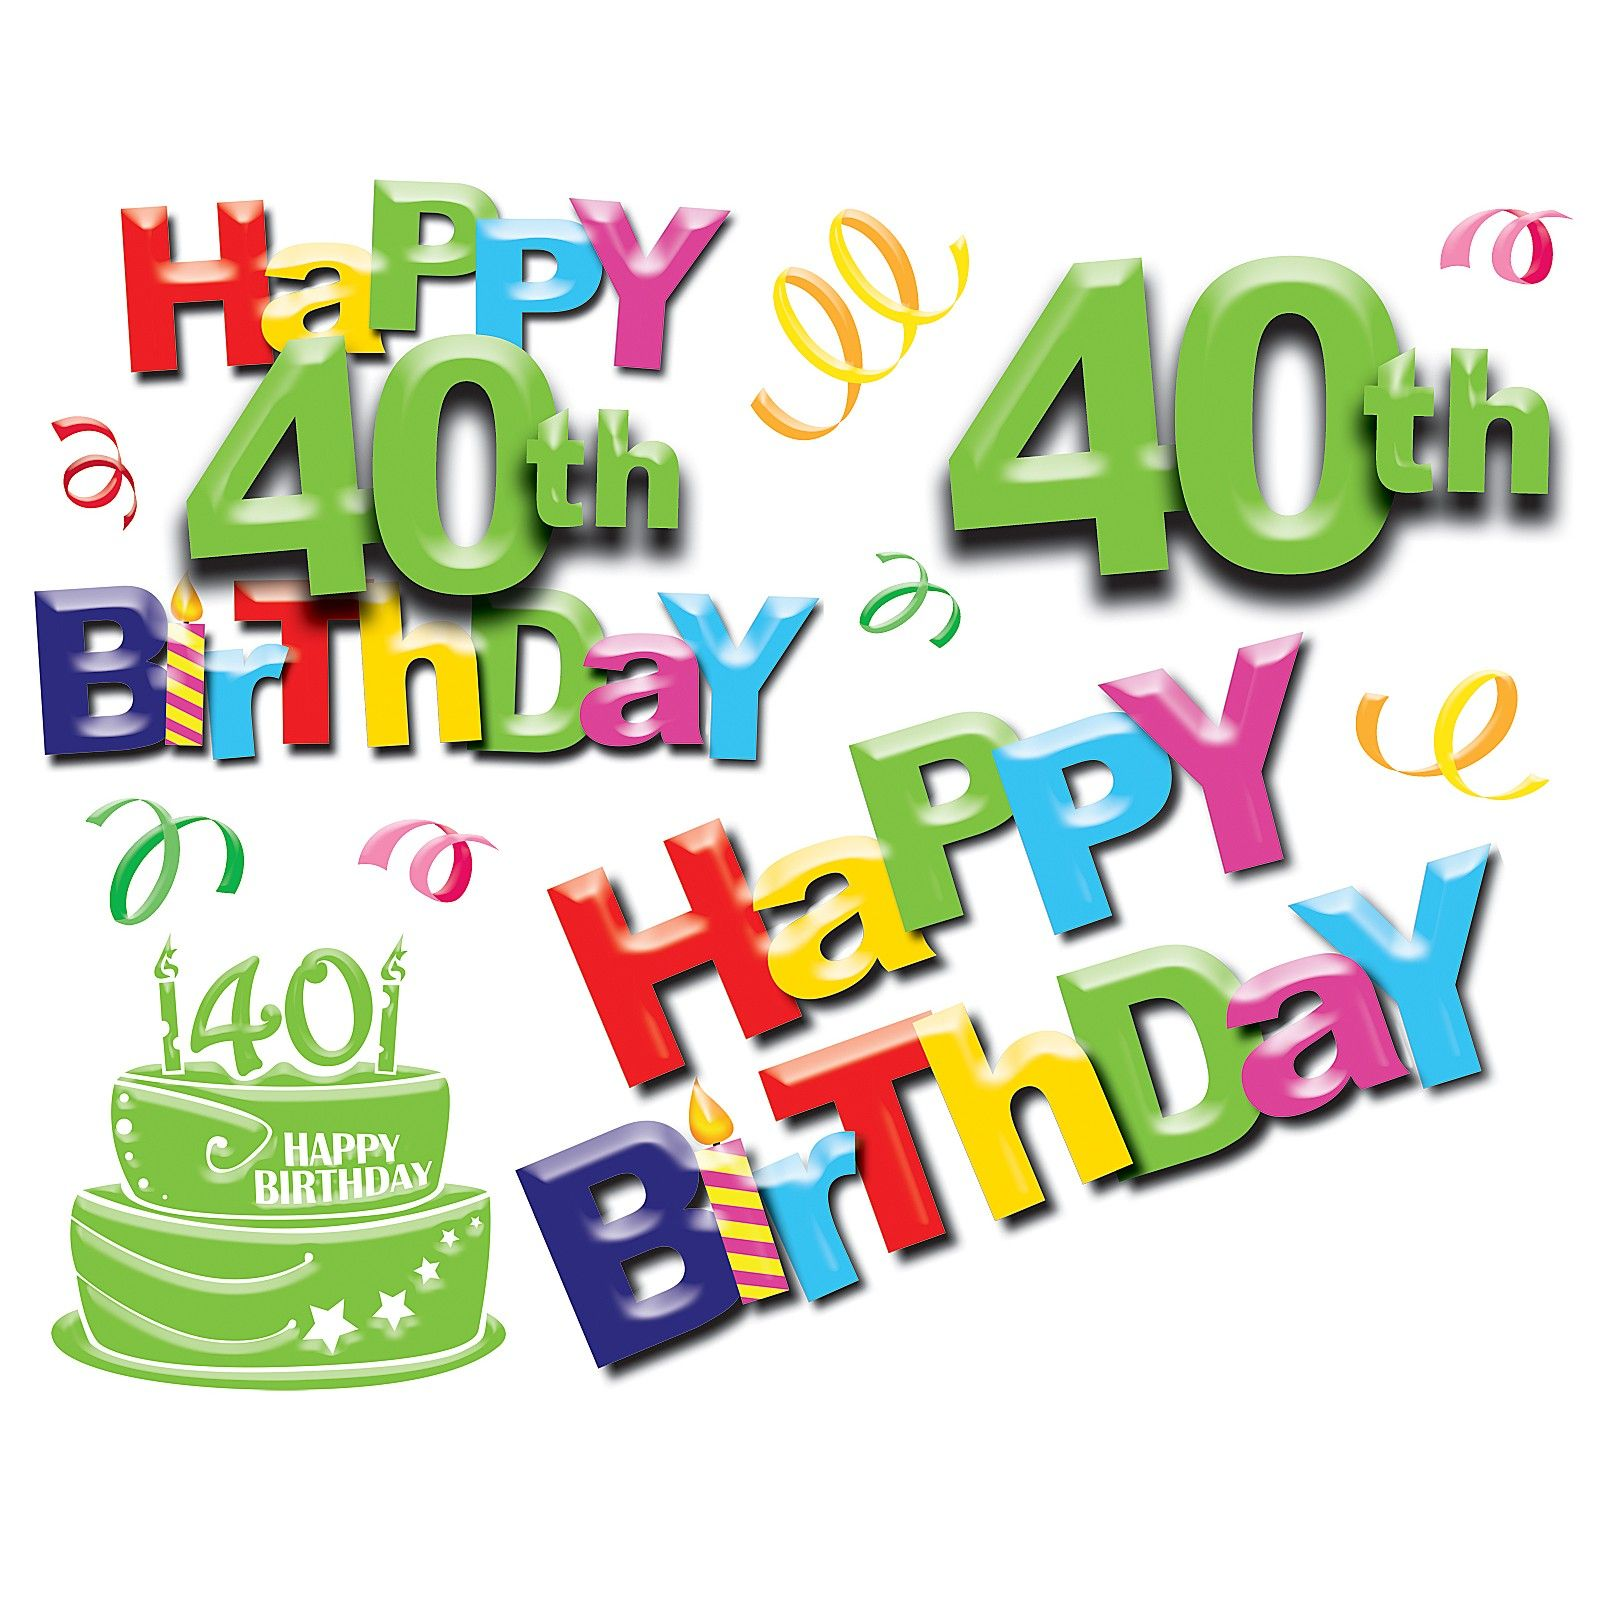 happy 40th birthday 1 just other stuff pinterest birthday rh pinterest com Happy Belated Anniversary Wishes Birthday Clip Art